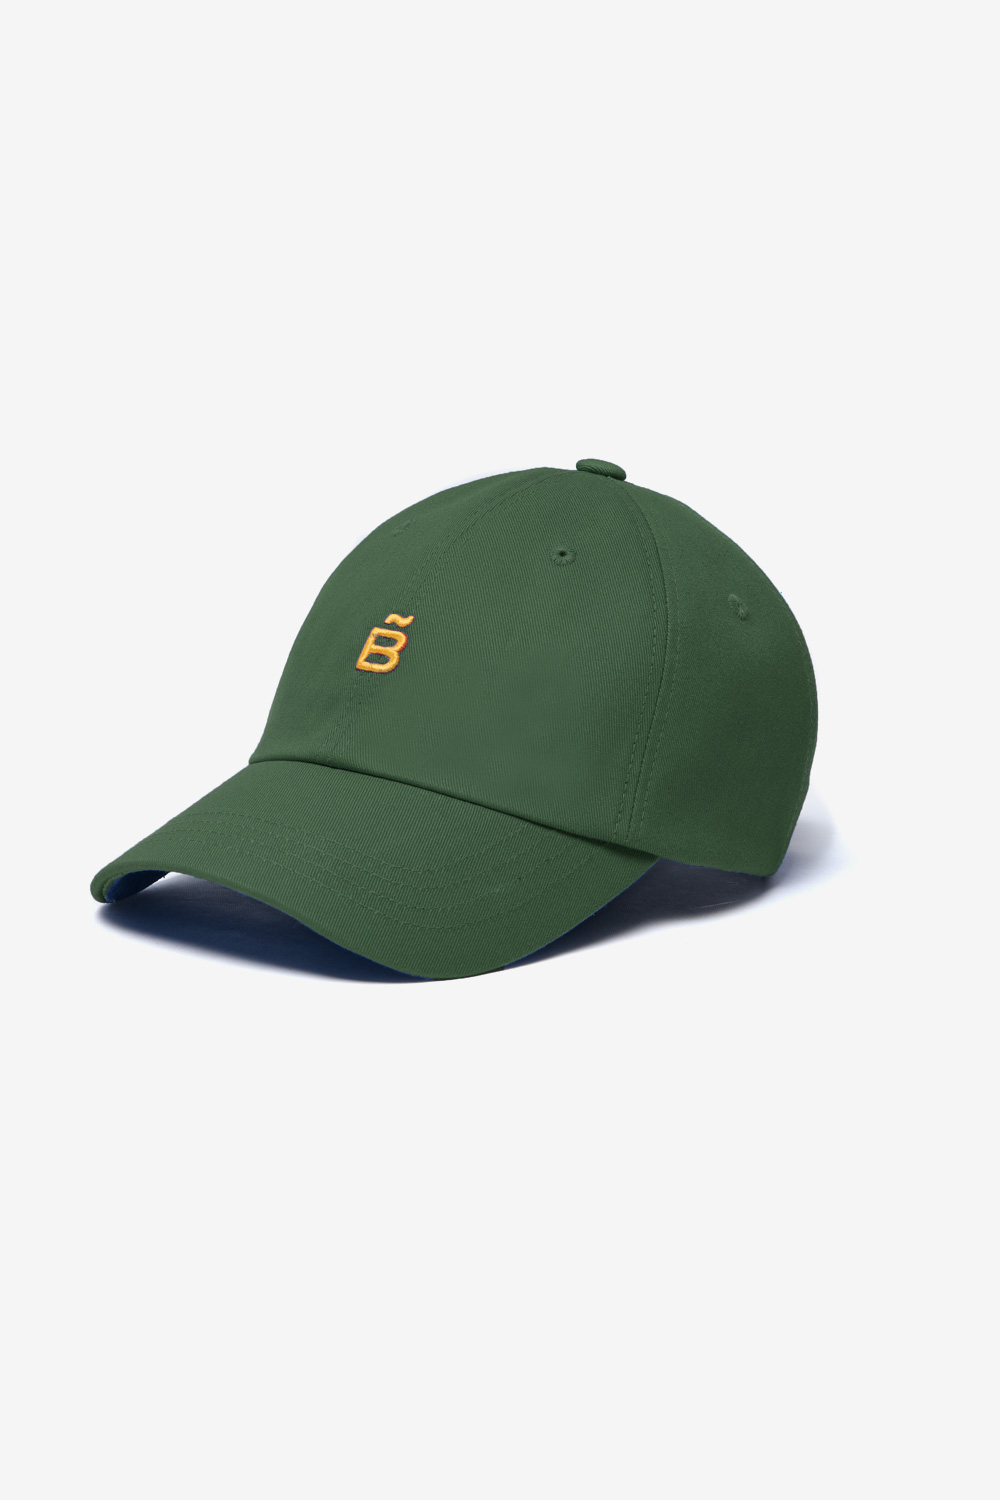 Slow B Basic Ball Cap_Khaki BS0SCP501KH00F